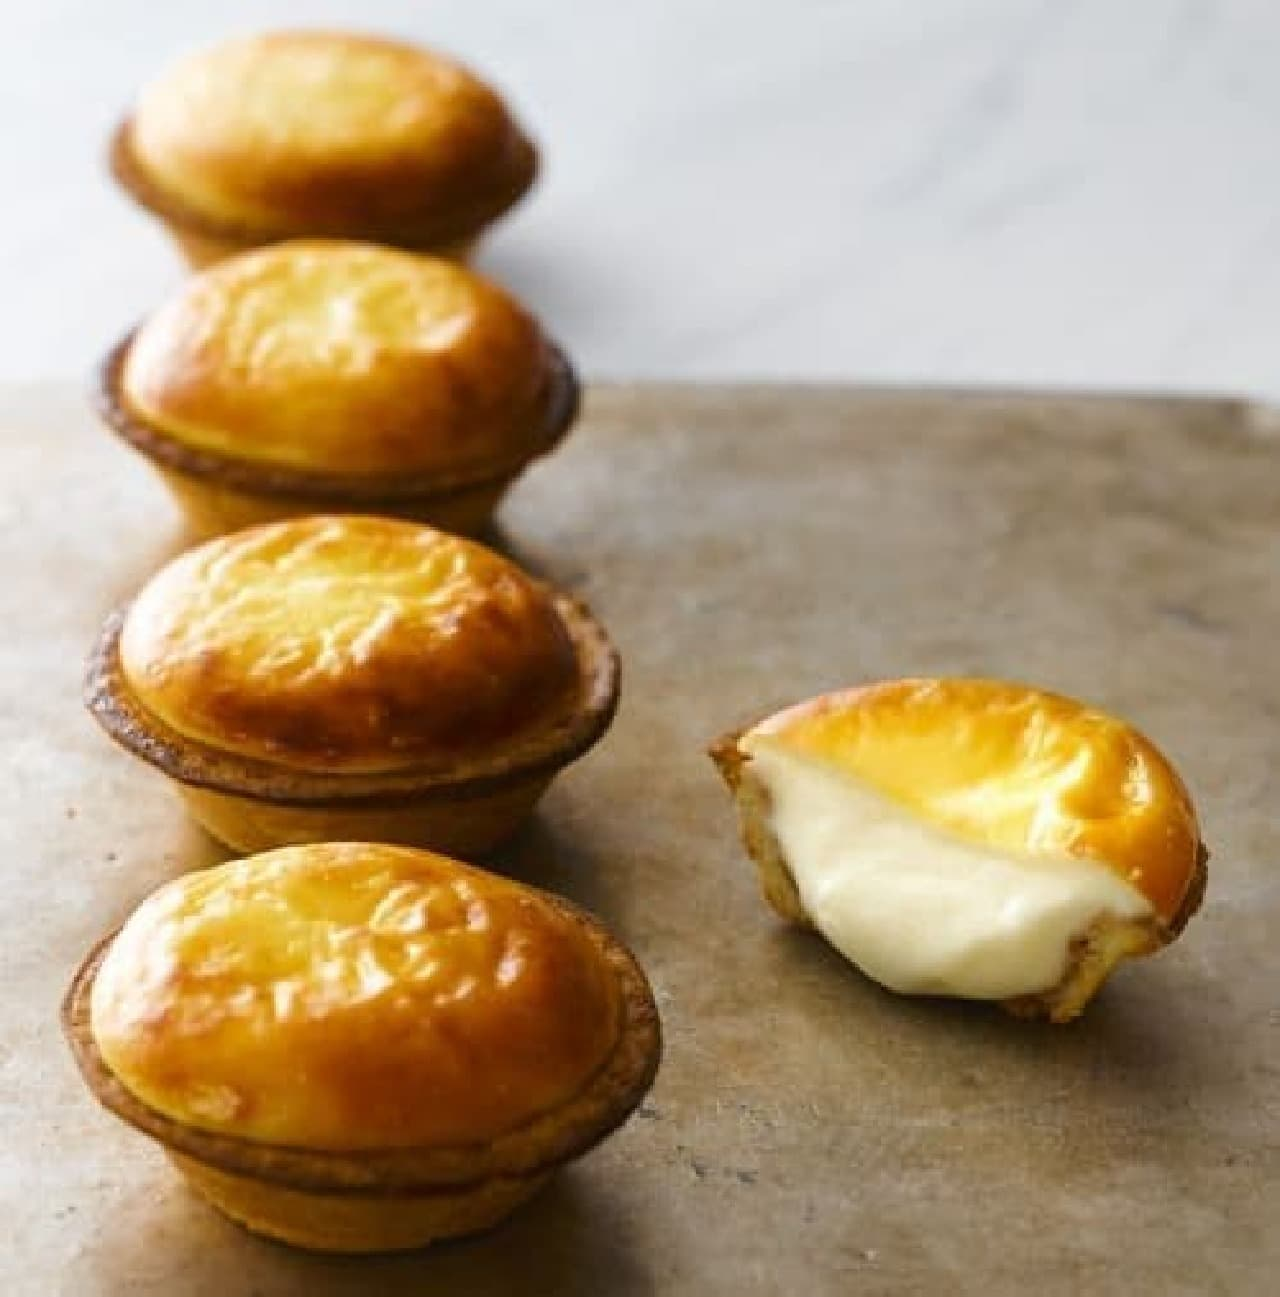 BAKE CHEESE TART「チーズタルト」